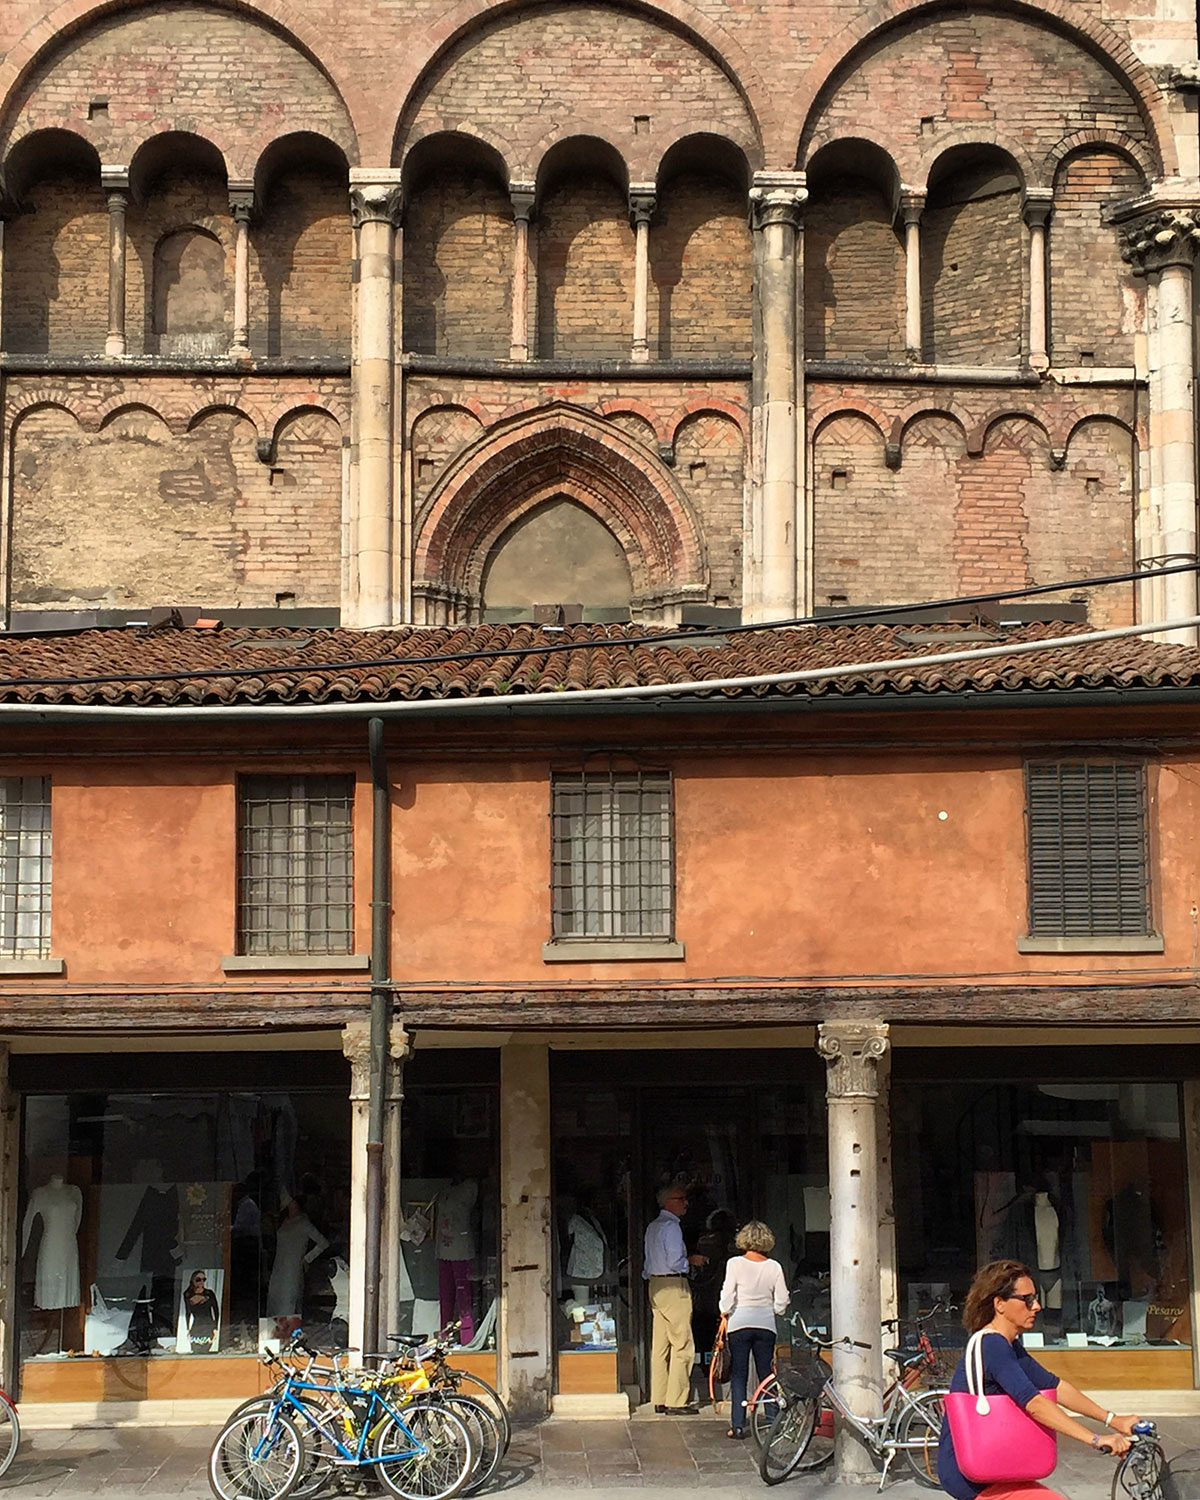 Shops built up against the cathedral walls